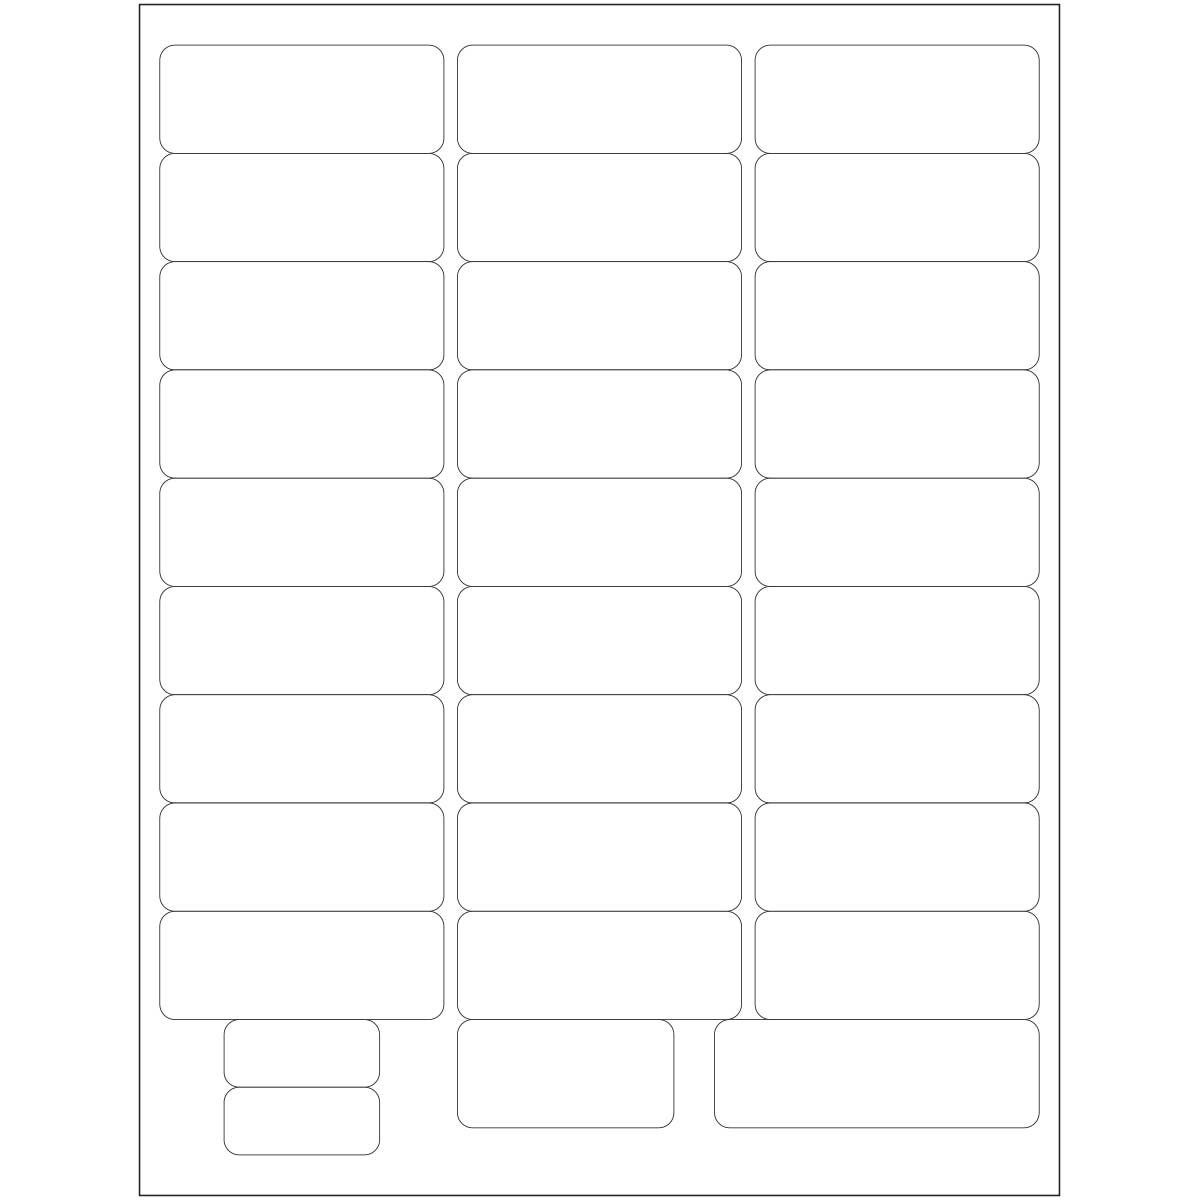 PDC Healthcare WBLBL8 Laser Portrait Premium Wristband Chart Label for Adult and Pediatric, 8.5'' Width x 11'' Length, White (Case of 1000)